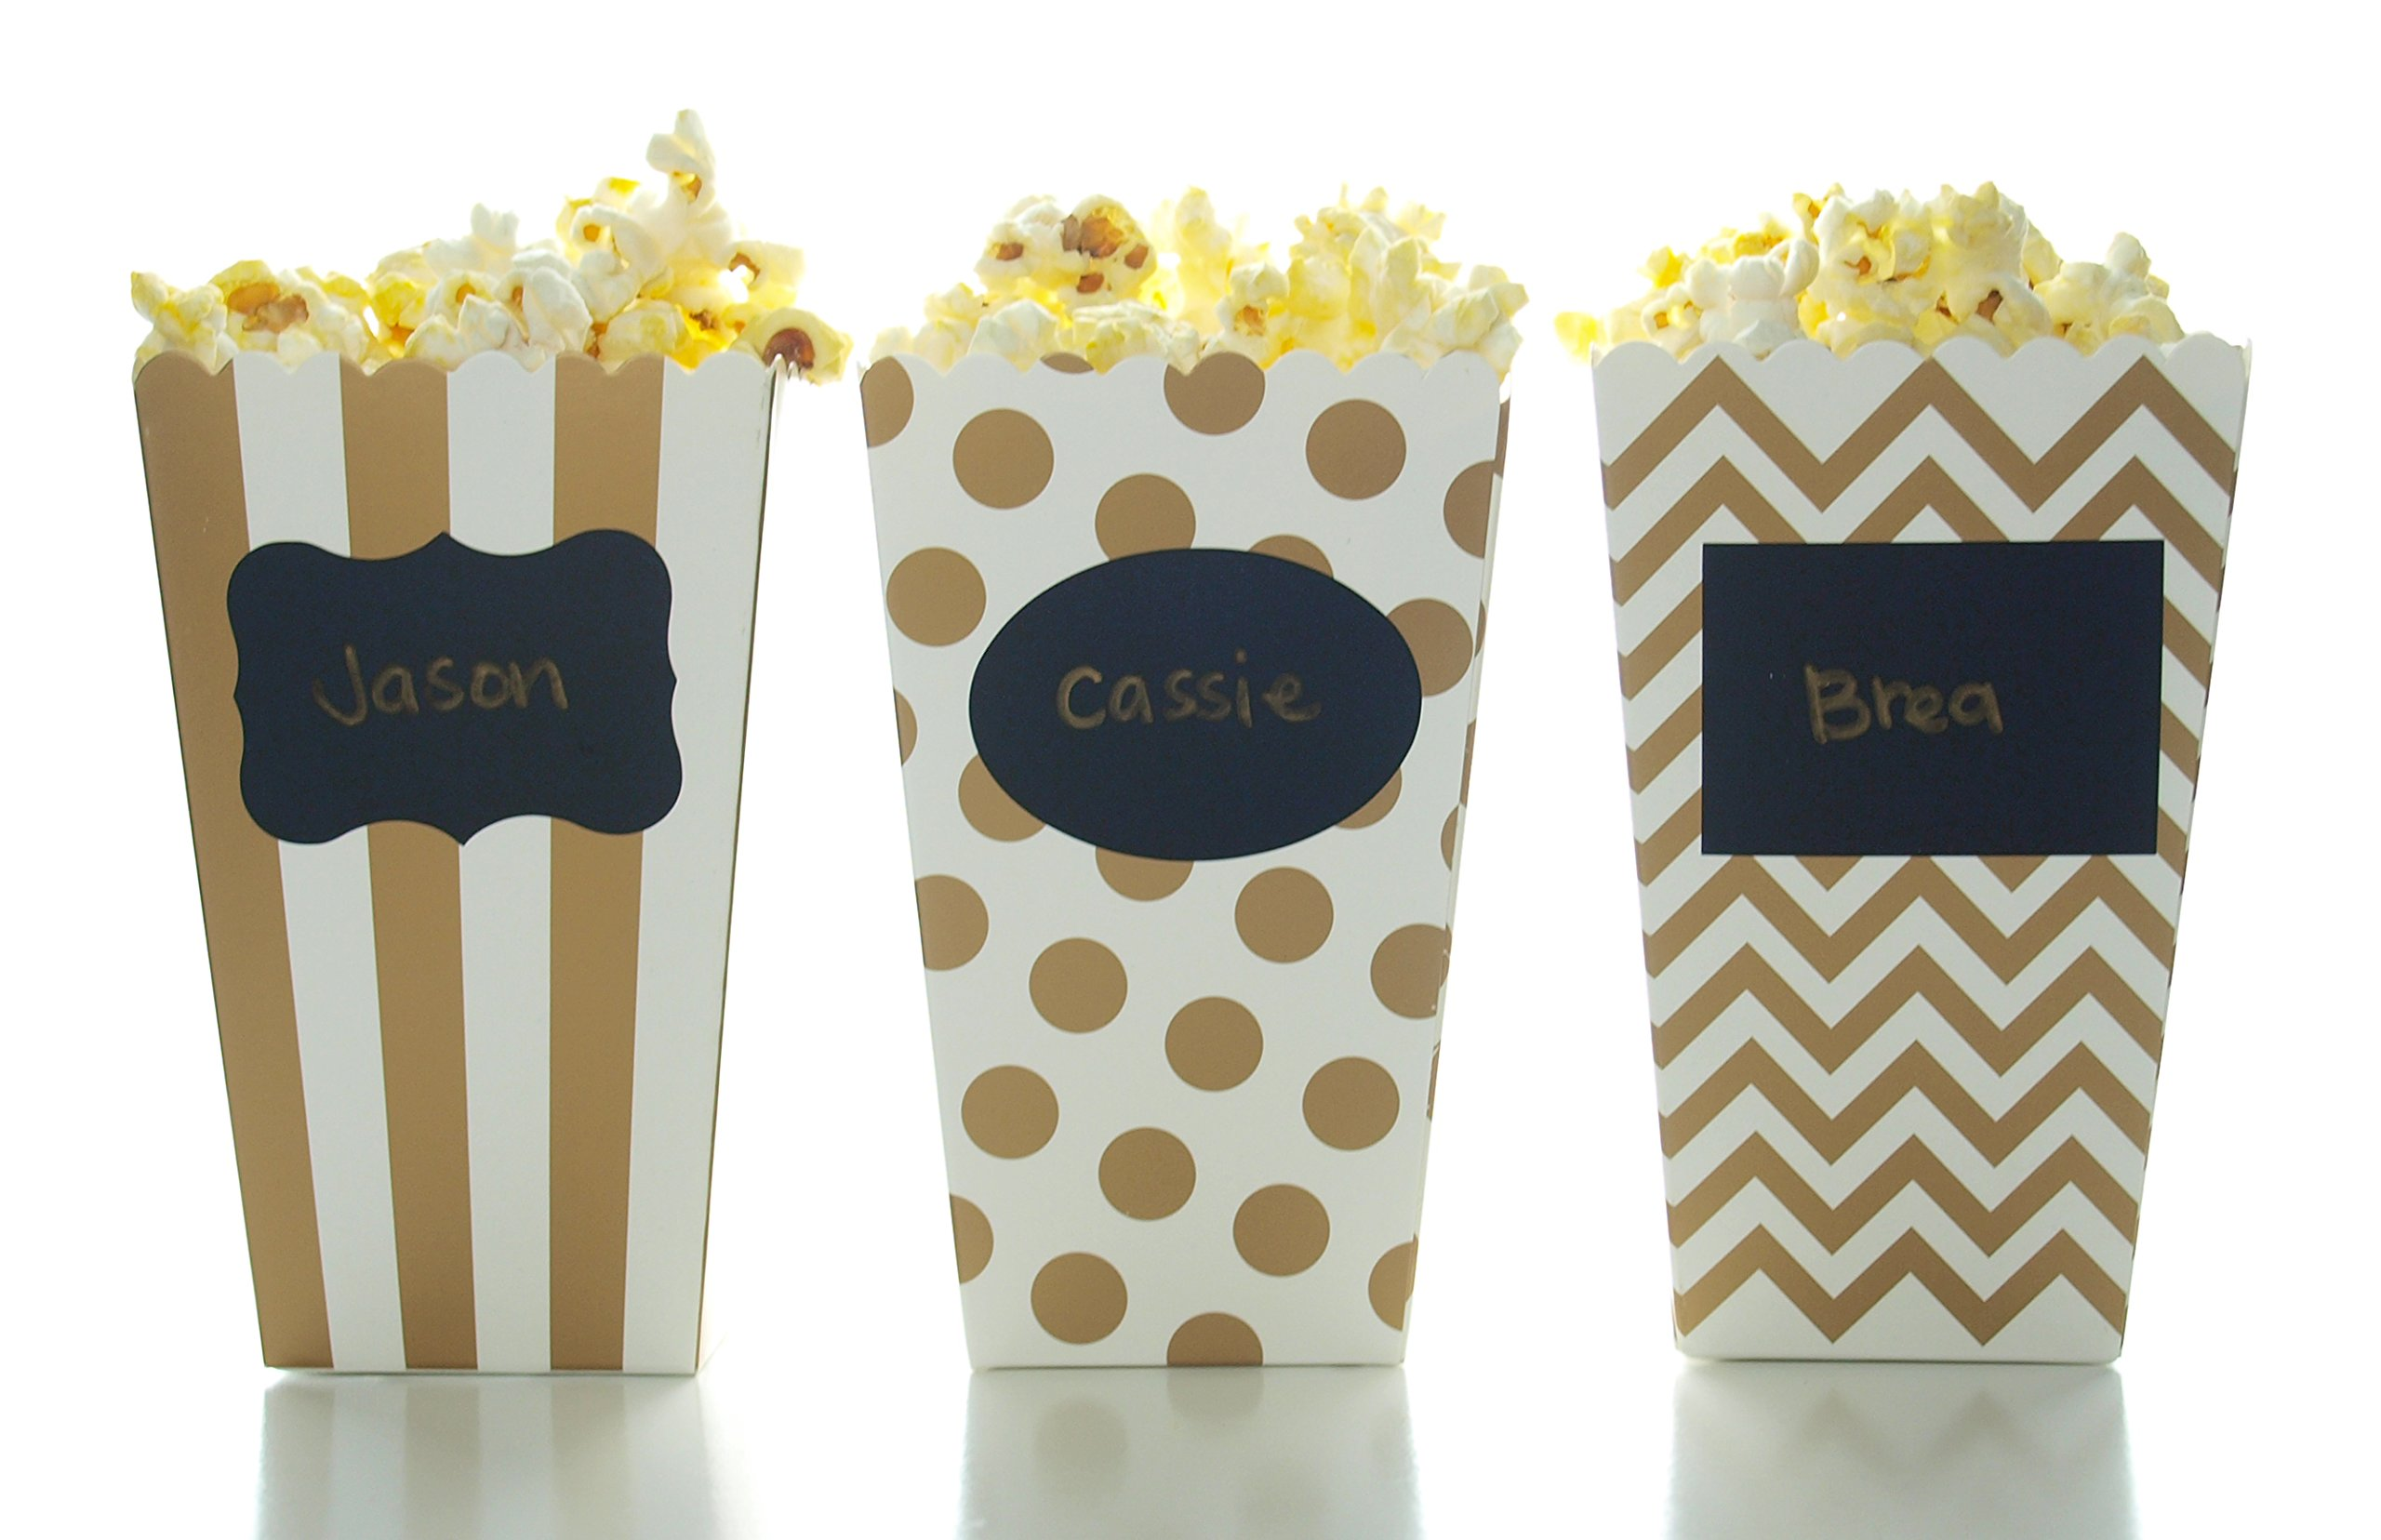 Gold Popcorn Boxes & Black Label Chalkboard Vinyl Stickers (36 Pack) - Open-Top Candy / Treat Favor Boxes, Use Decal Tag to Personalize Party Favors, Mini Popcorn Tubs